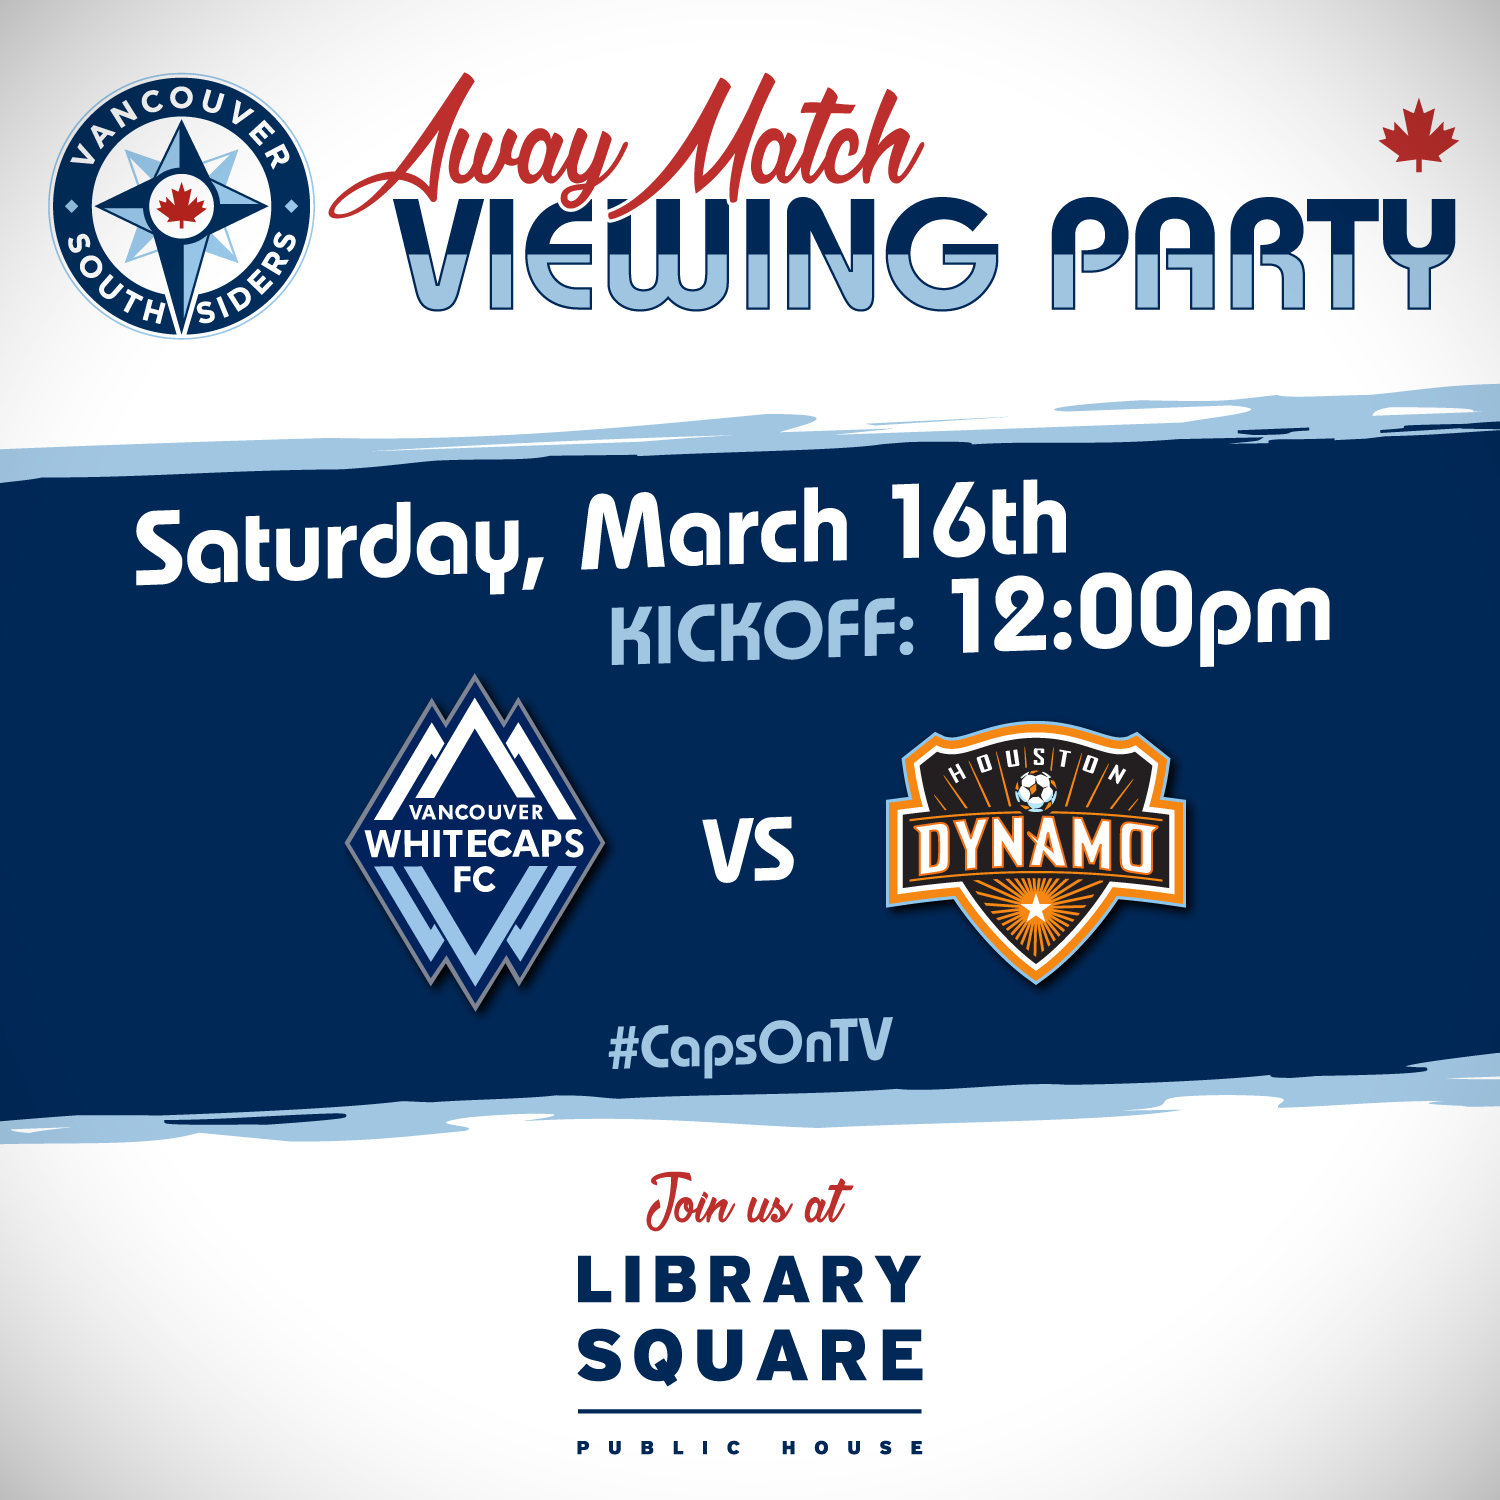 Away viewing at Library Square: Whitecaps at Dynamo. Kickoff 12:00